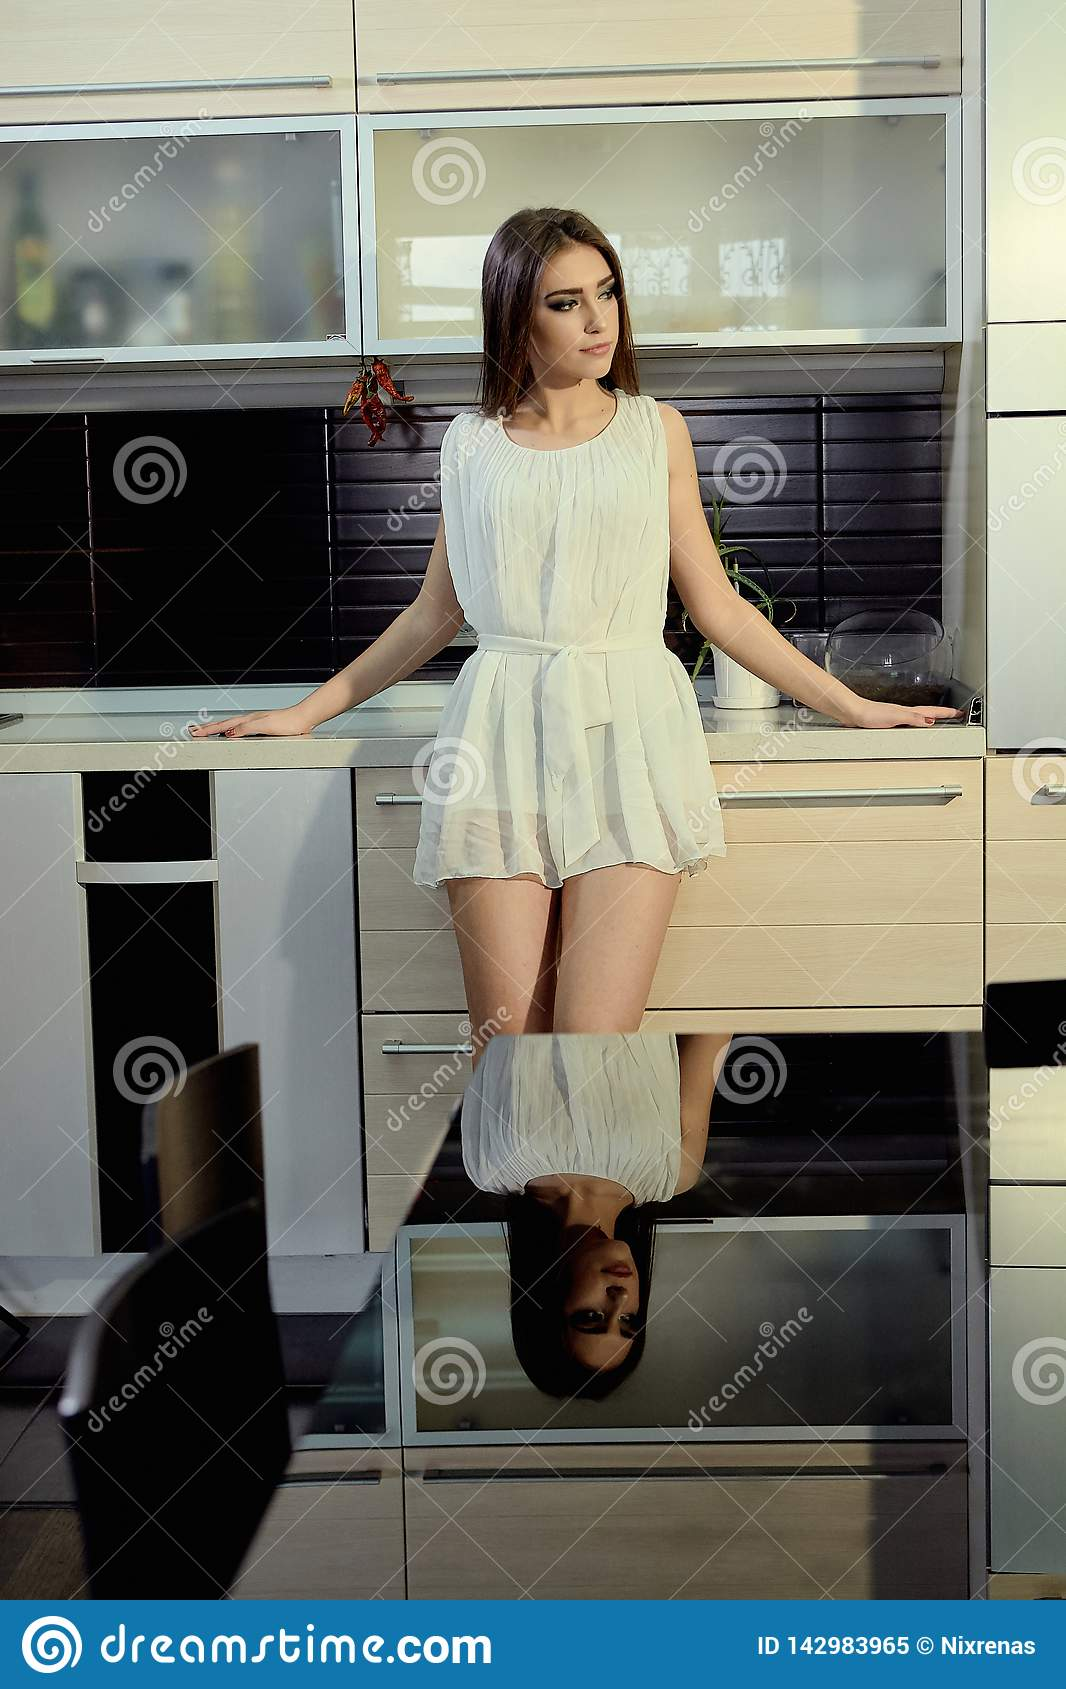 Cheerful smiling young white skin female with long brunette hair posing on the kitchen